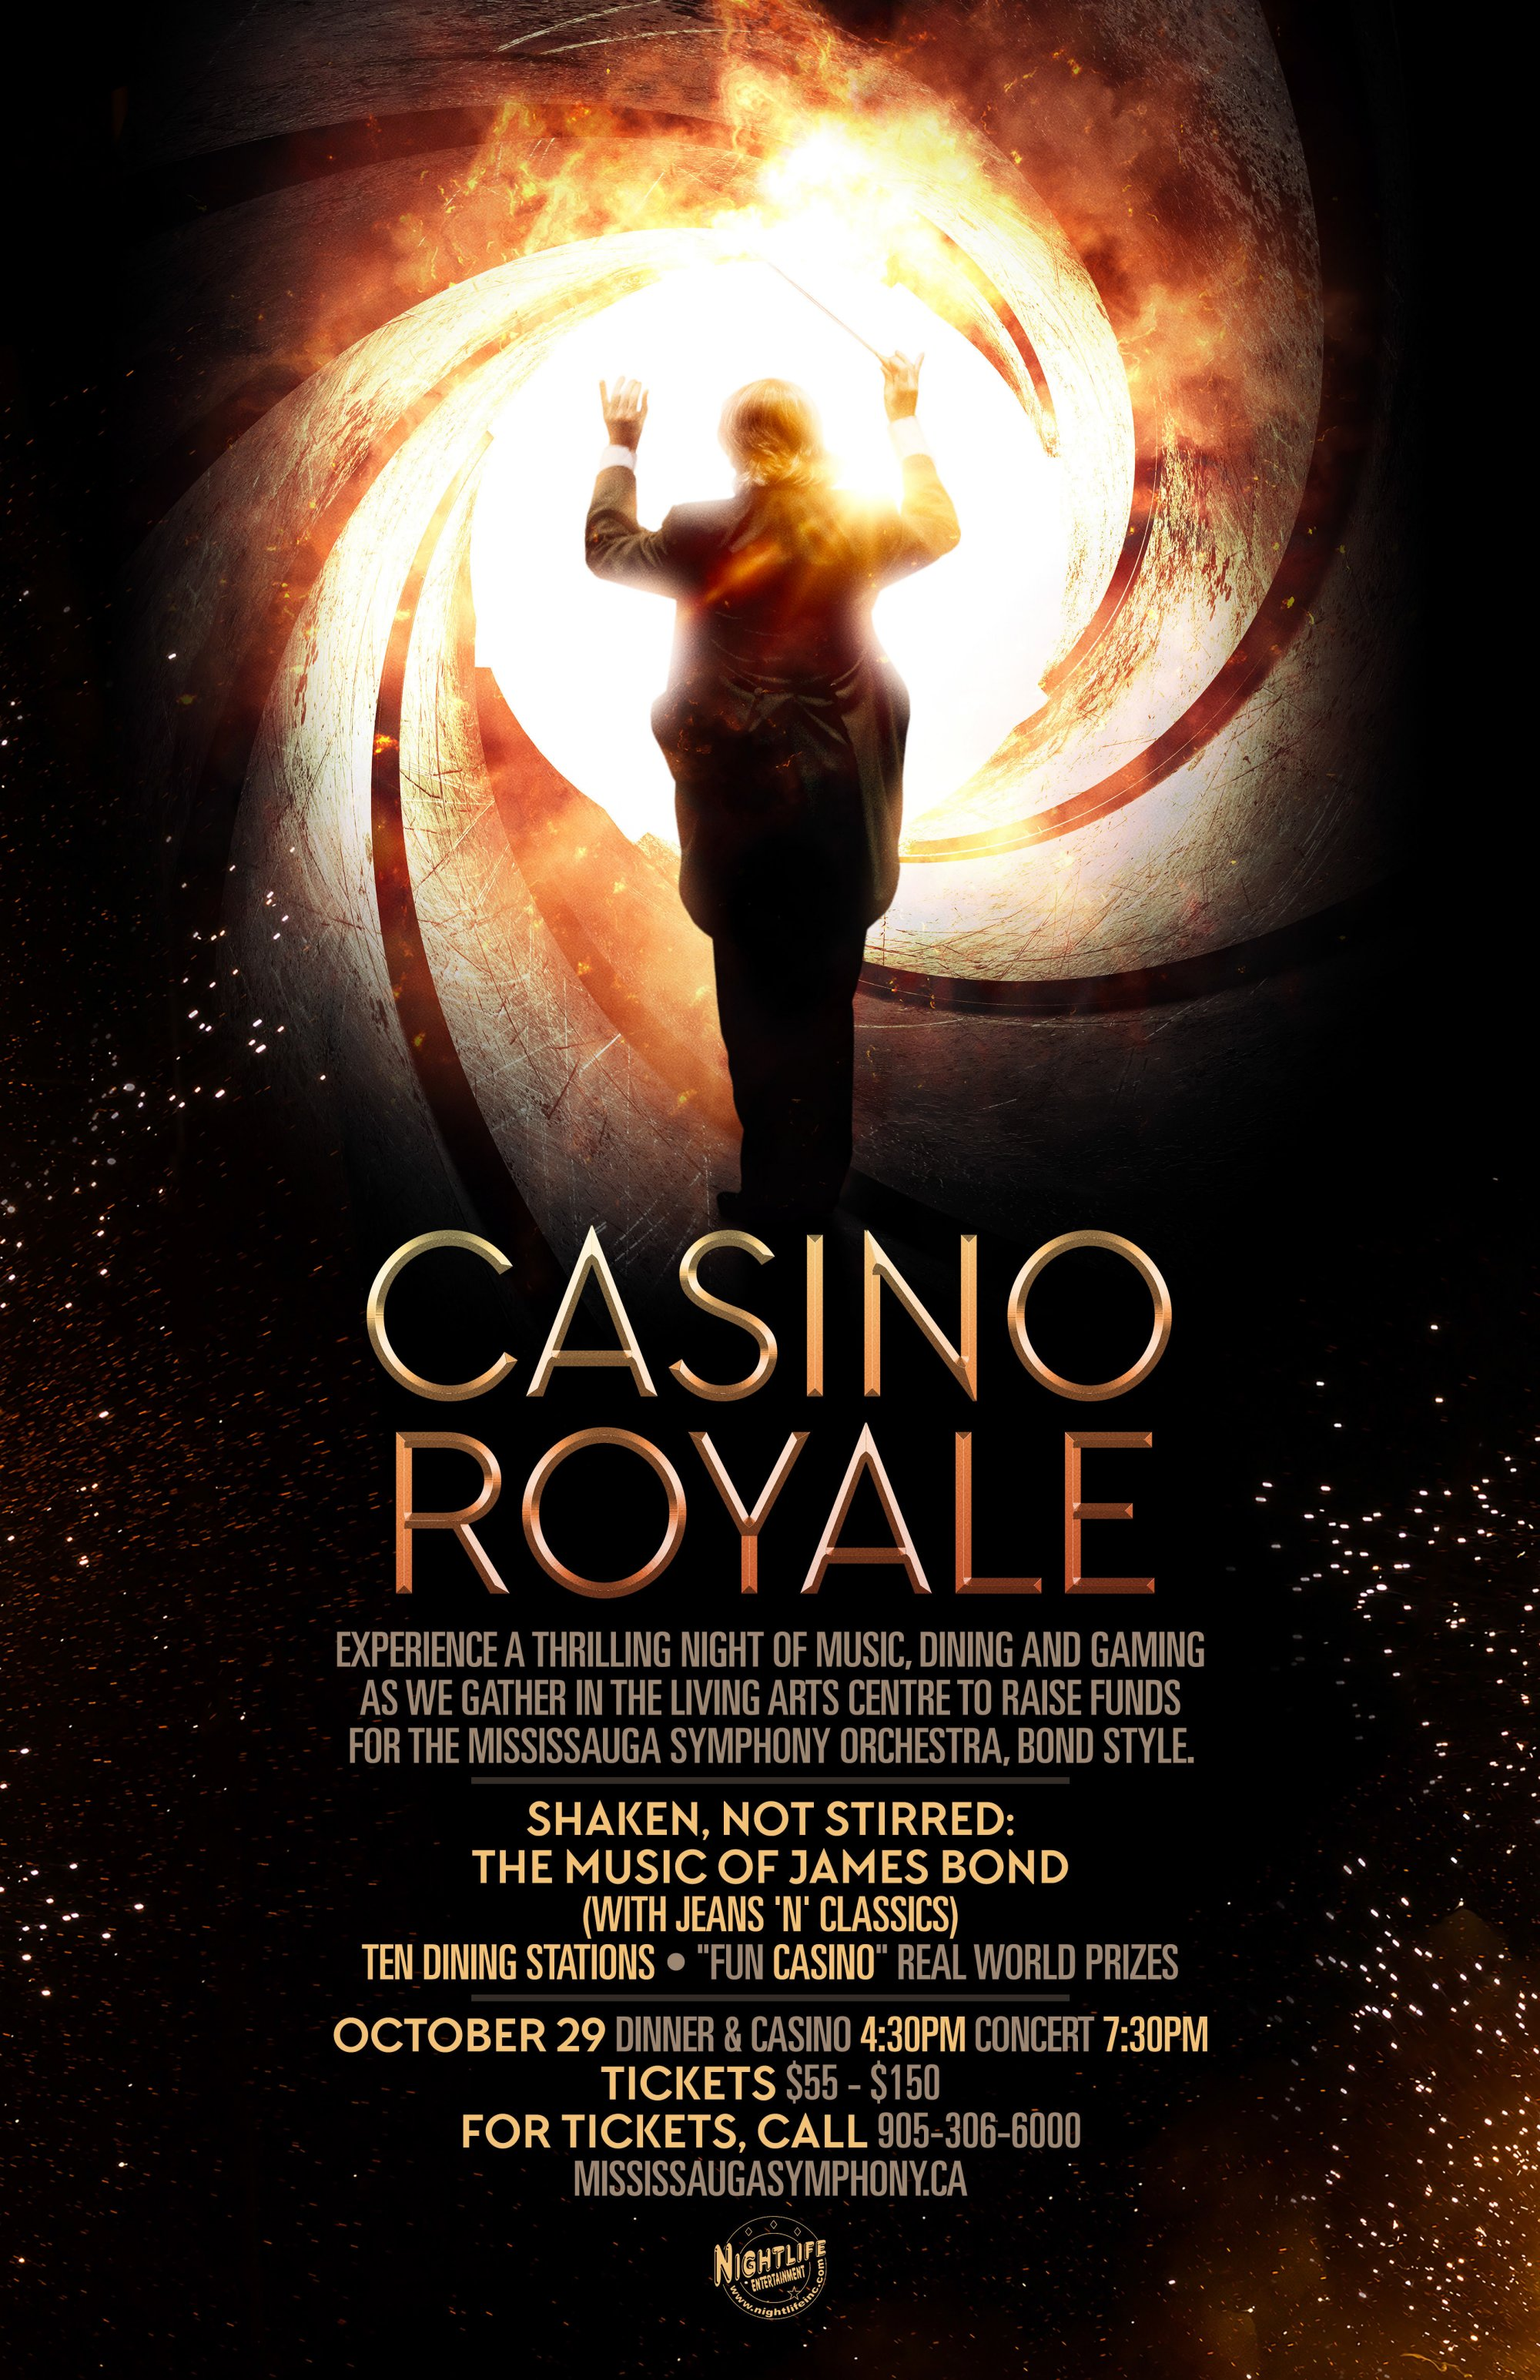 Casino Royale: Shaken, Not Stirred: The Music of James Bond image from Living Arts Centre email 23 Oct 2017